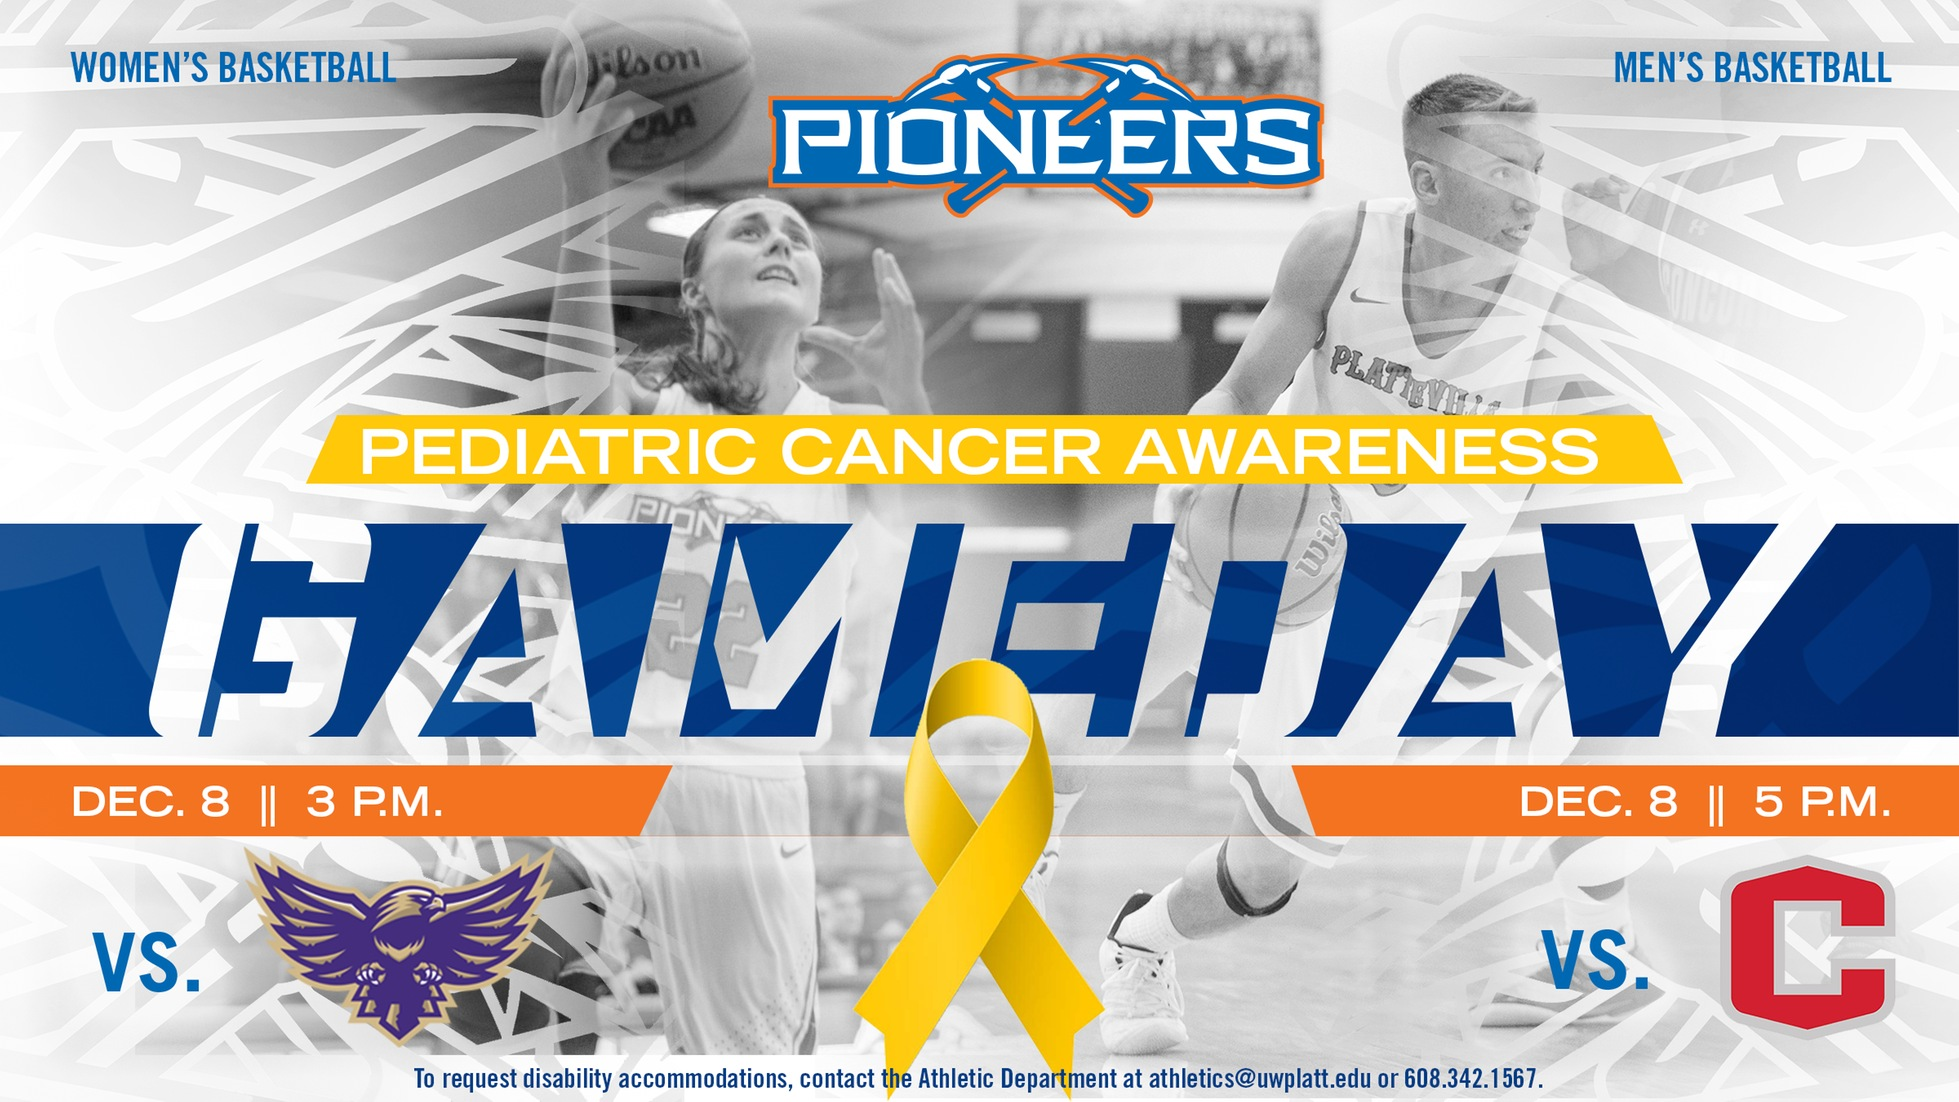 Pioneer basketball teams gear up for Pediatric Cancer Awareness games